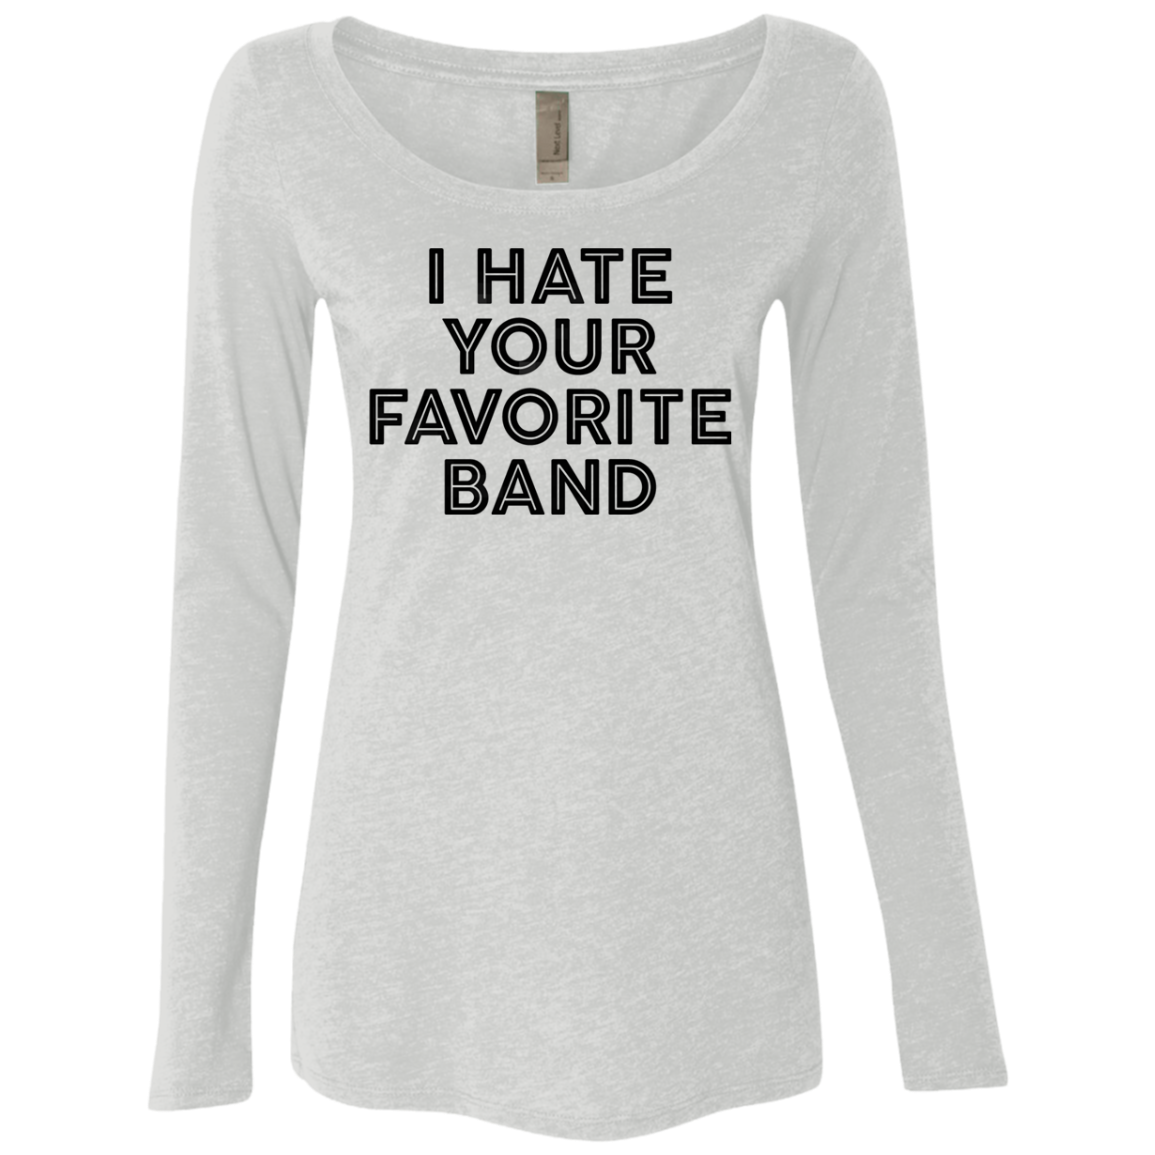 I Hate Your Favorite Band Women's Long Sleeve Tee